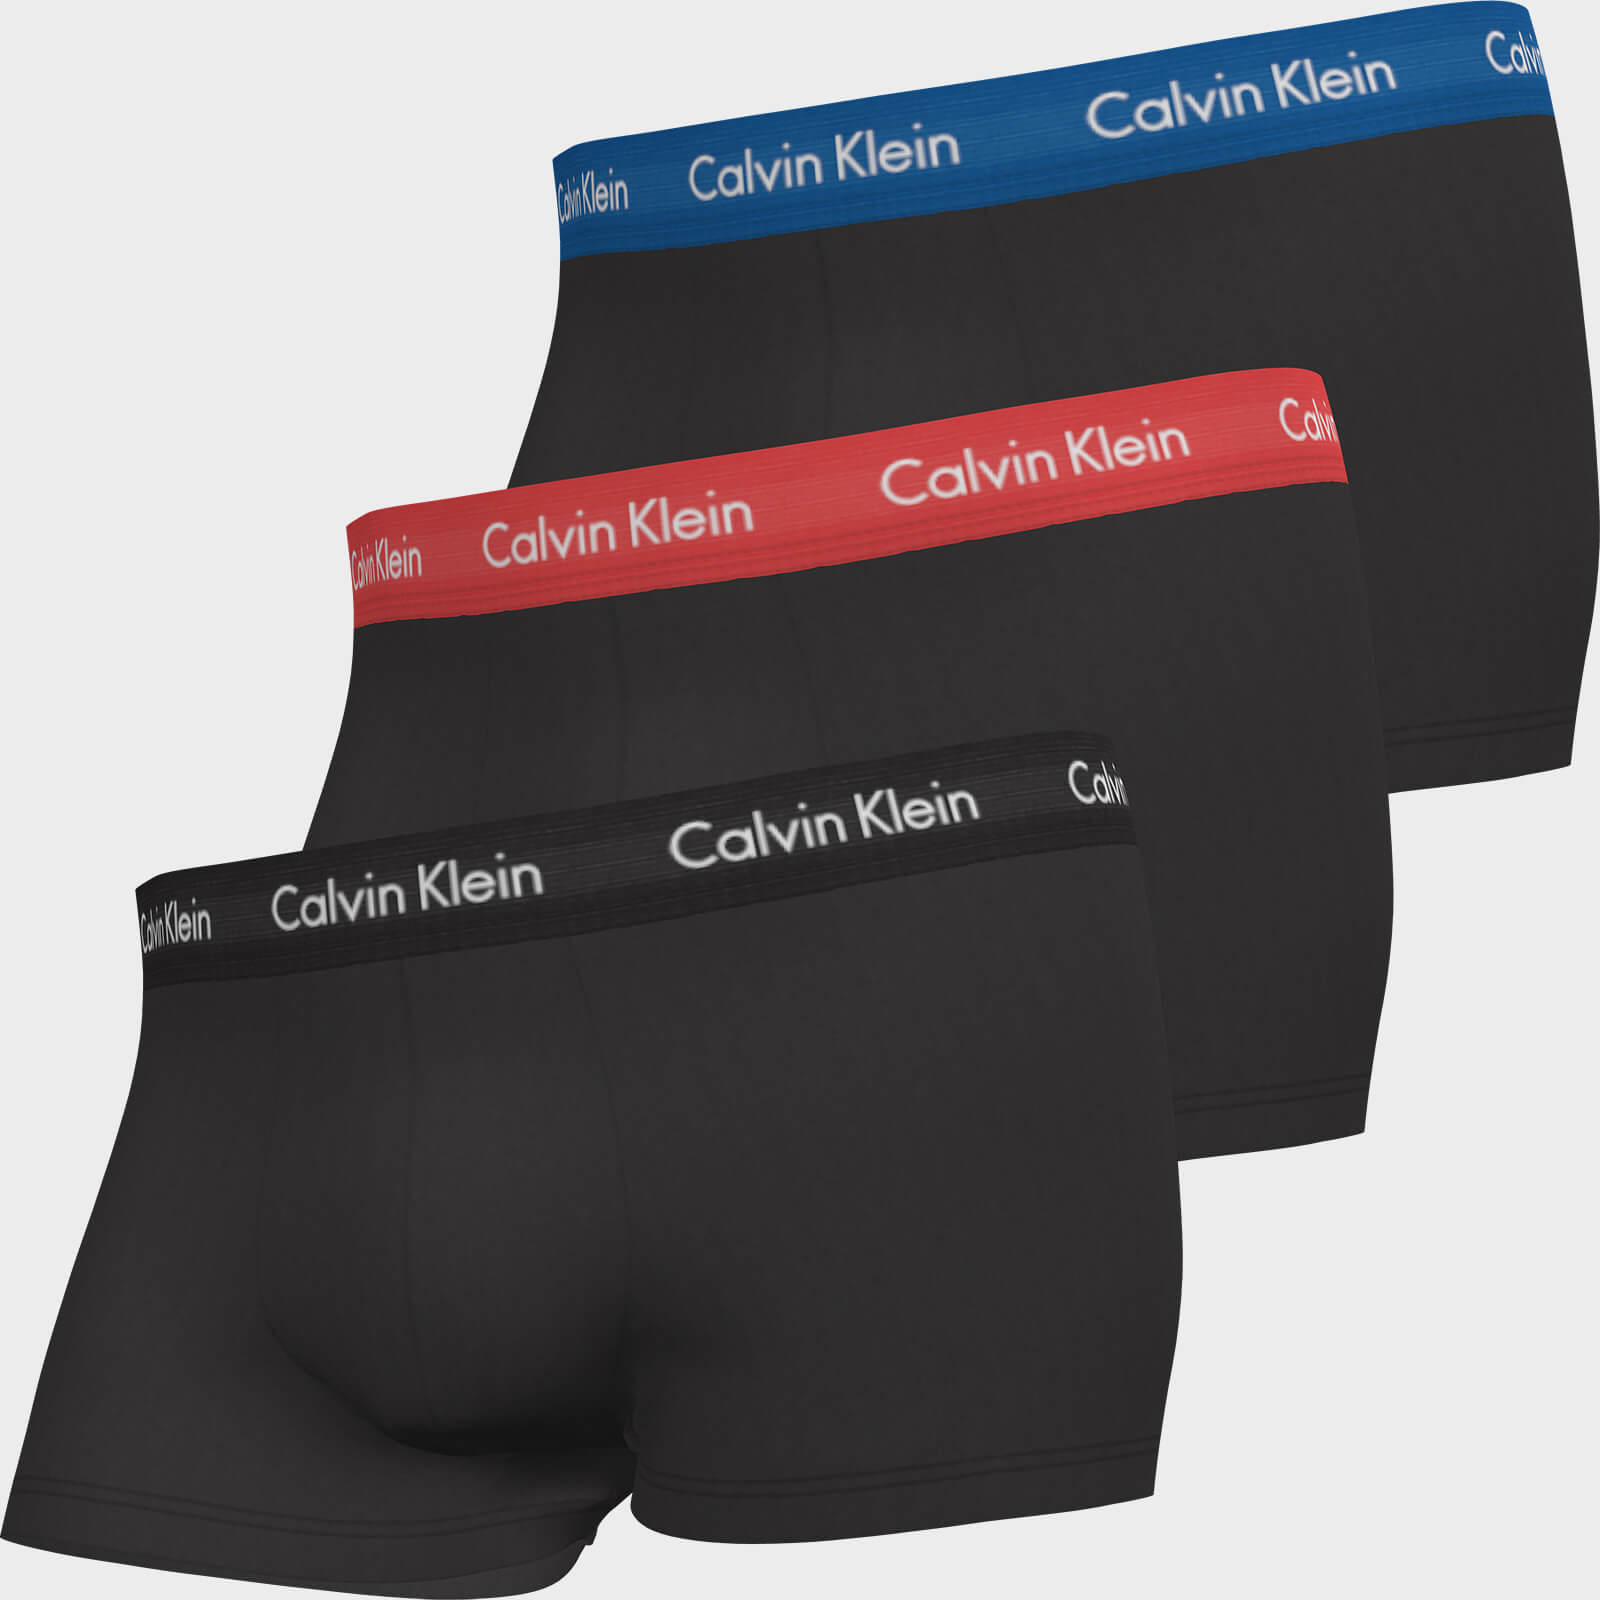 Calvin Klein Men's Cotton Stretch Low Rise 3 Pack Trunks With Contrast Waistband - B-Blue/Strawberry Field/Black - S